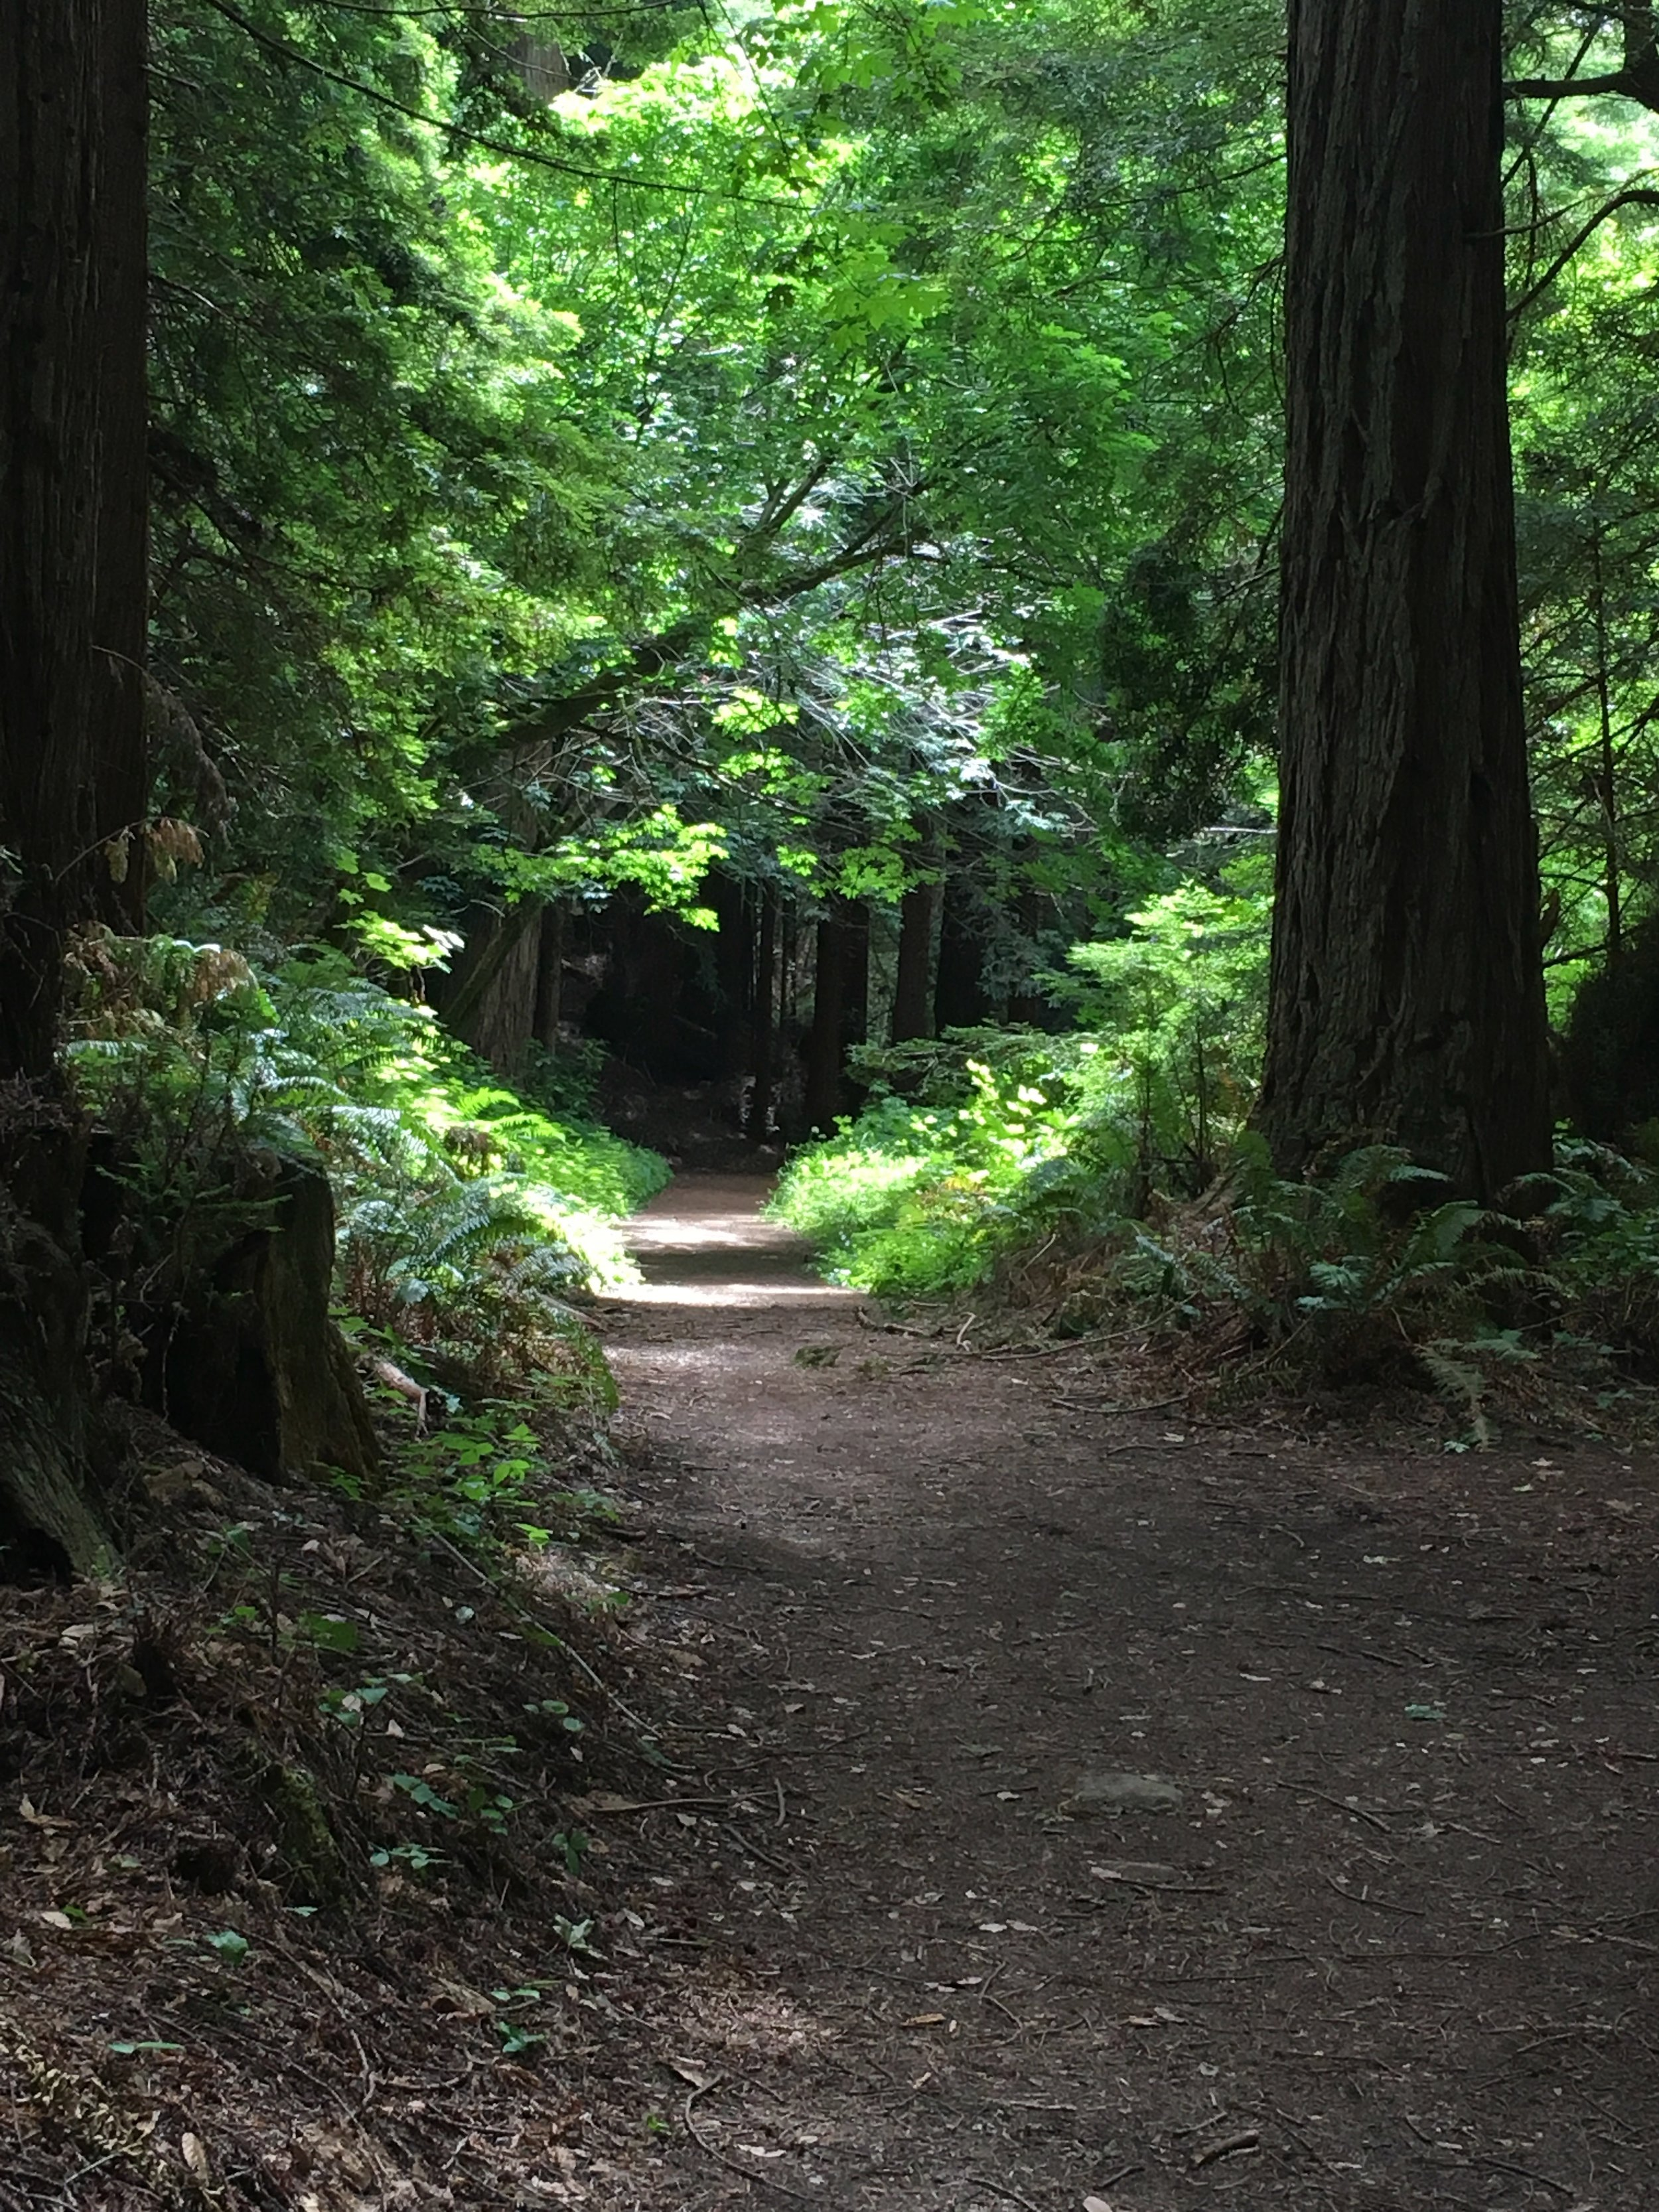 The healing redwoods welcome us to the trail with open arms.